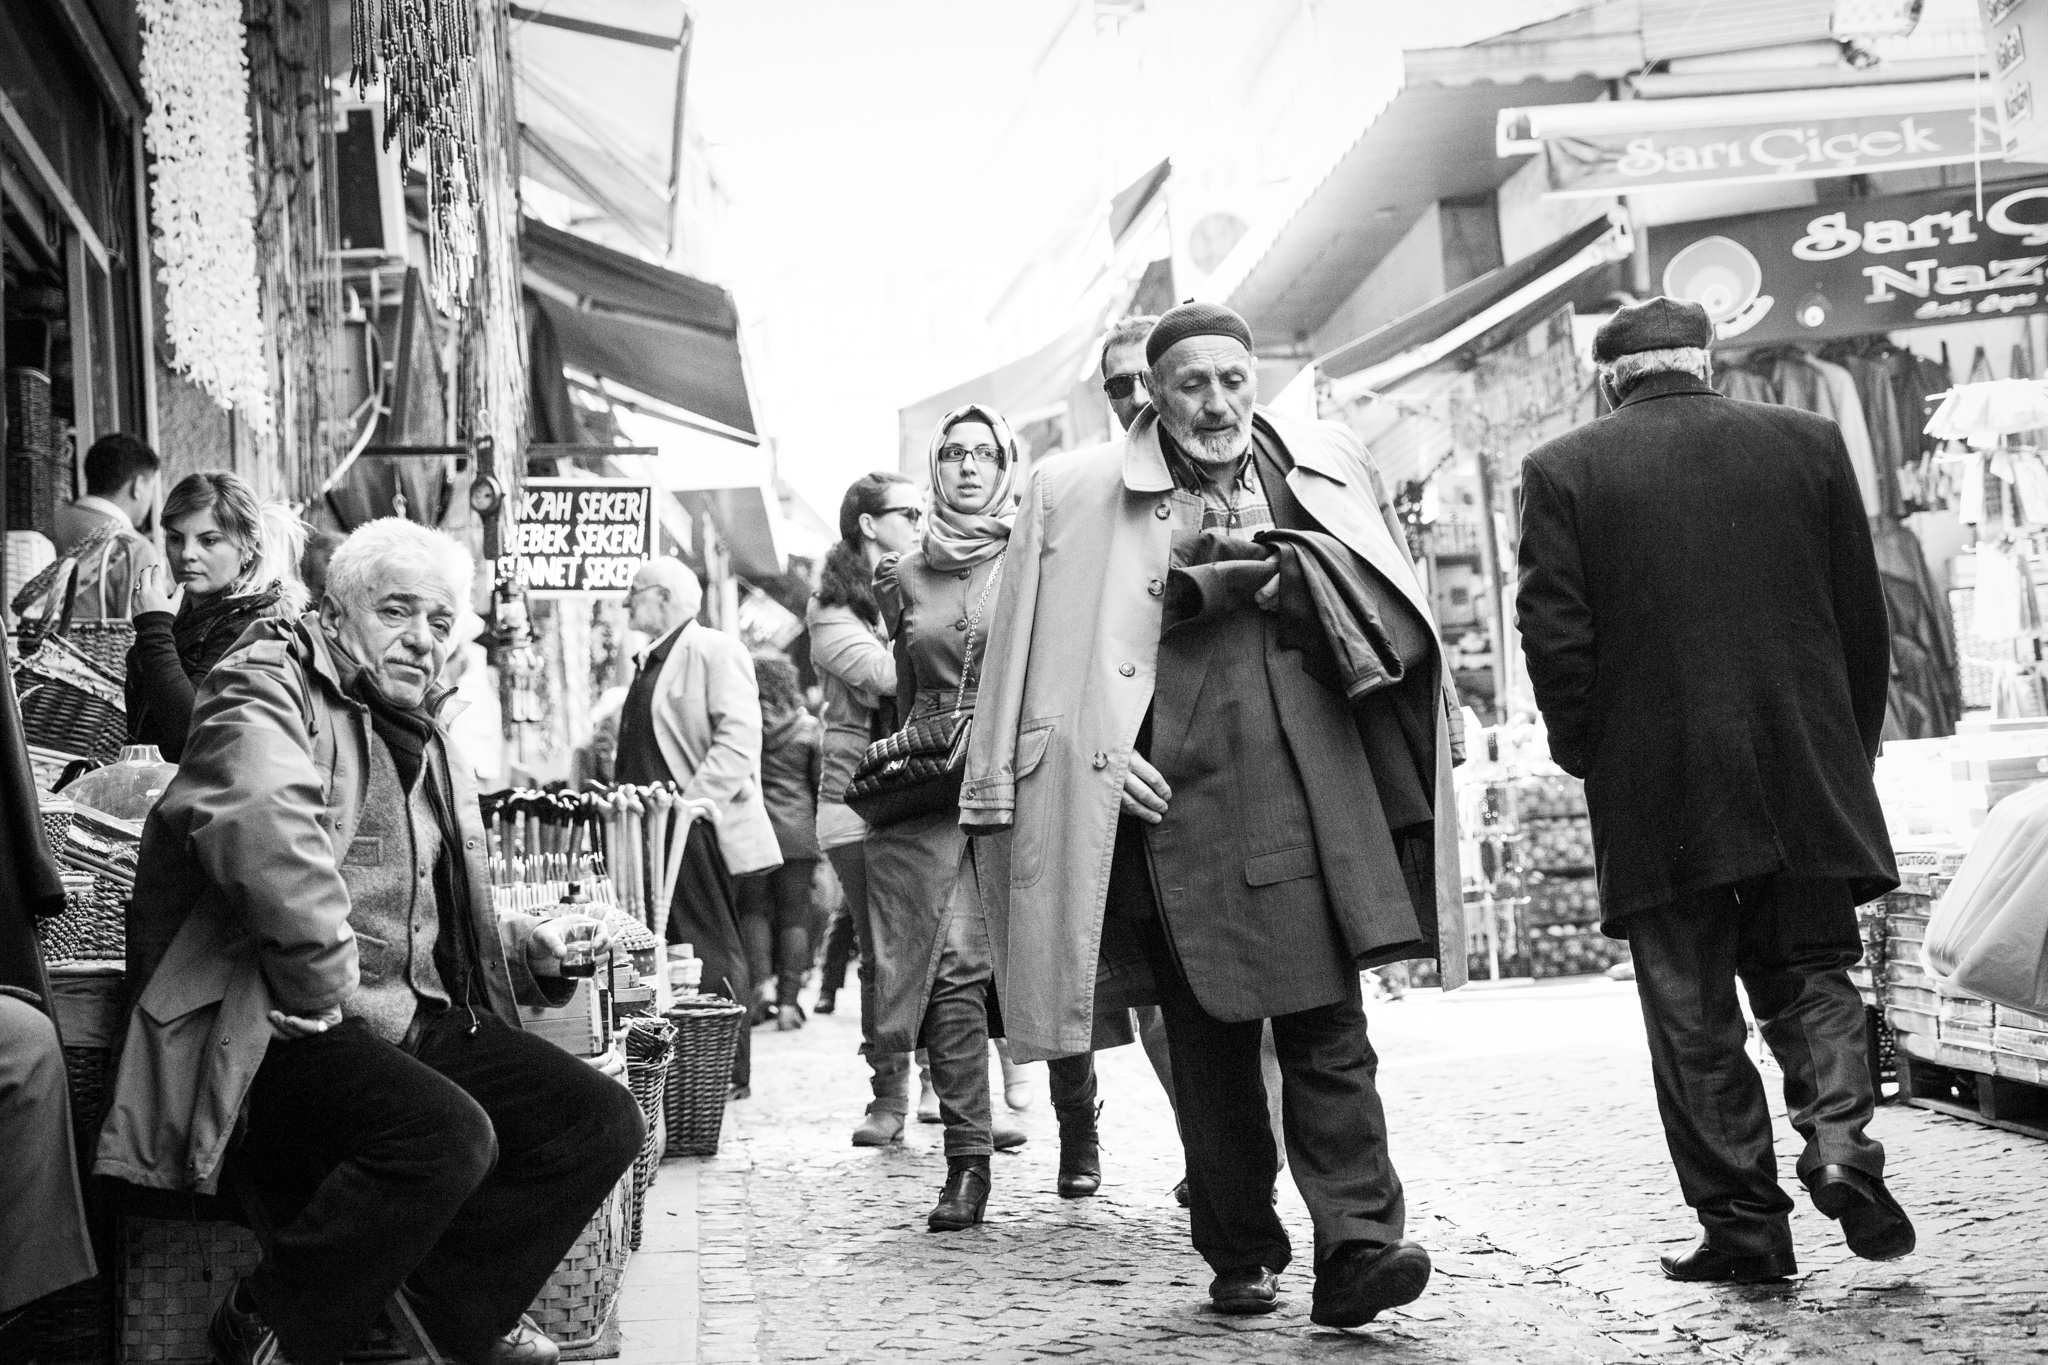 istanbul_hasircilar-cad-market-street-area-1016-man-with-many-jackets.jpg